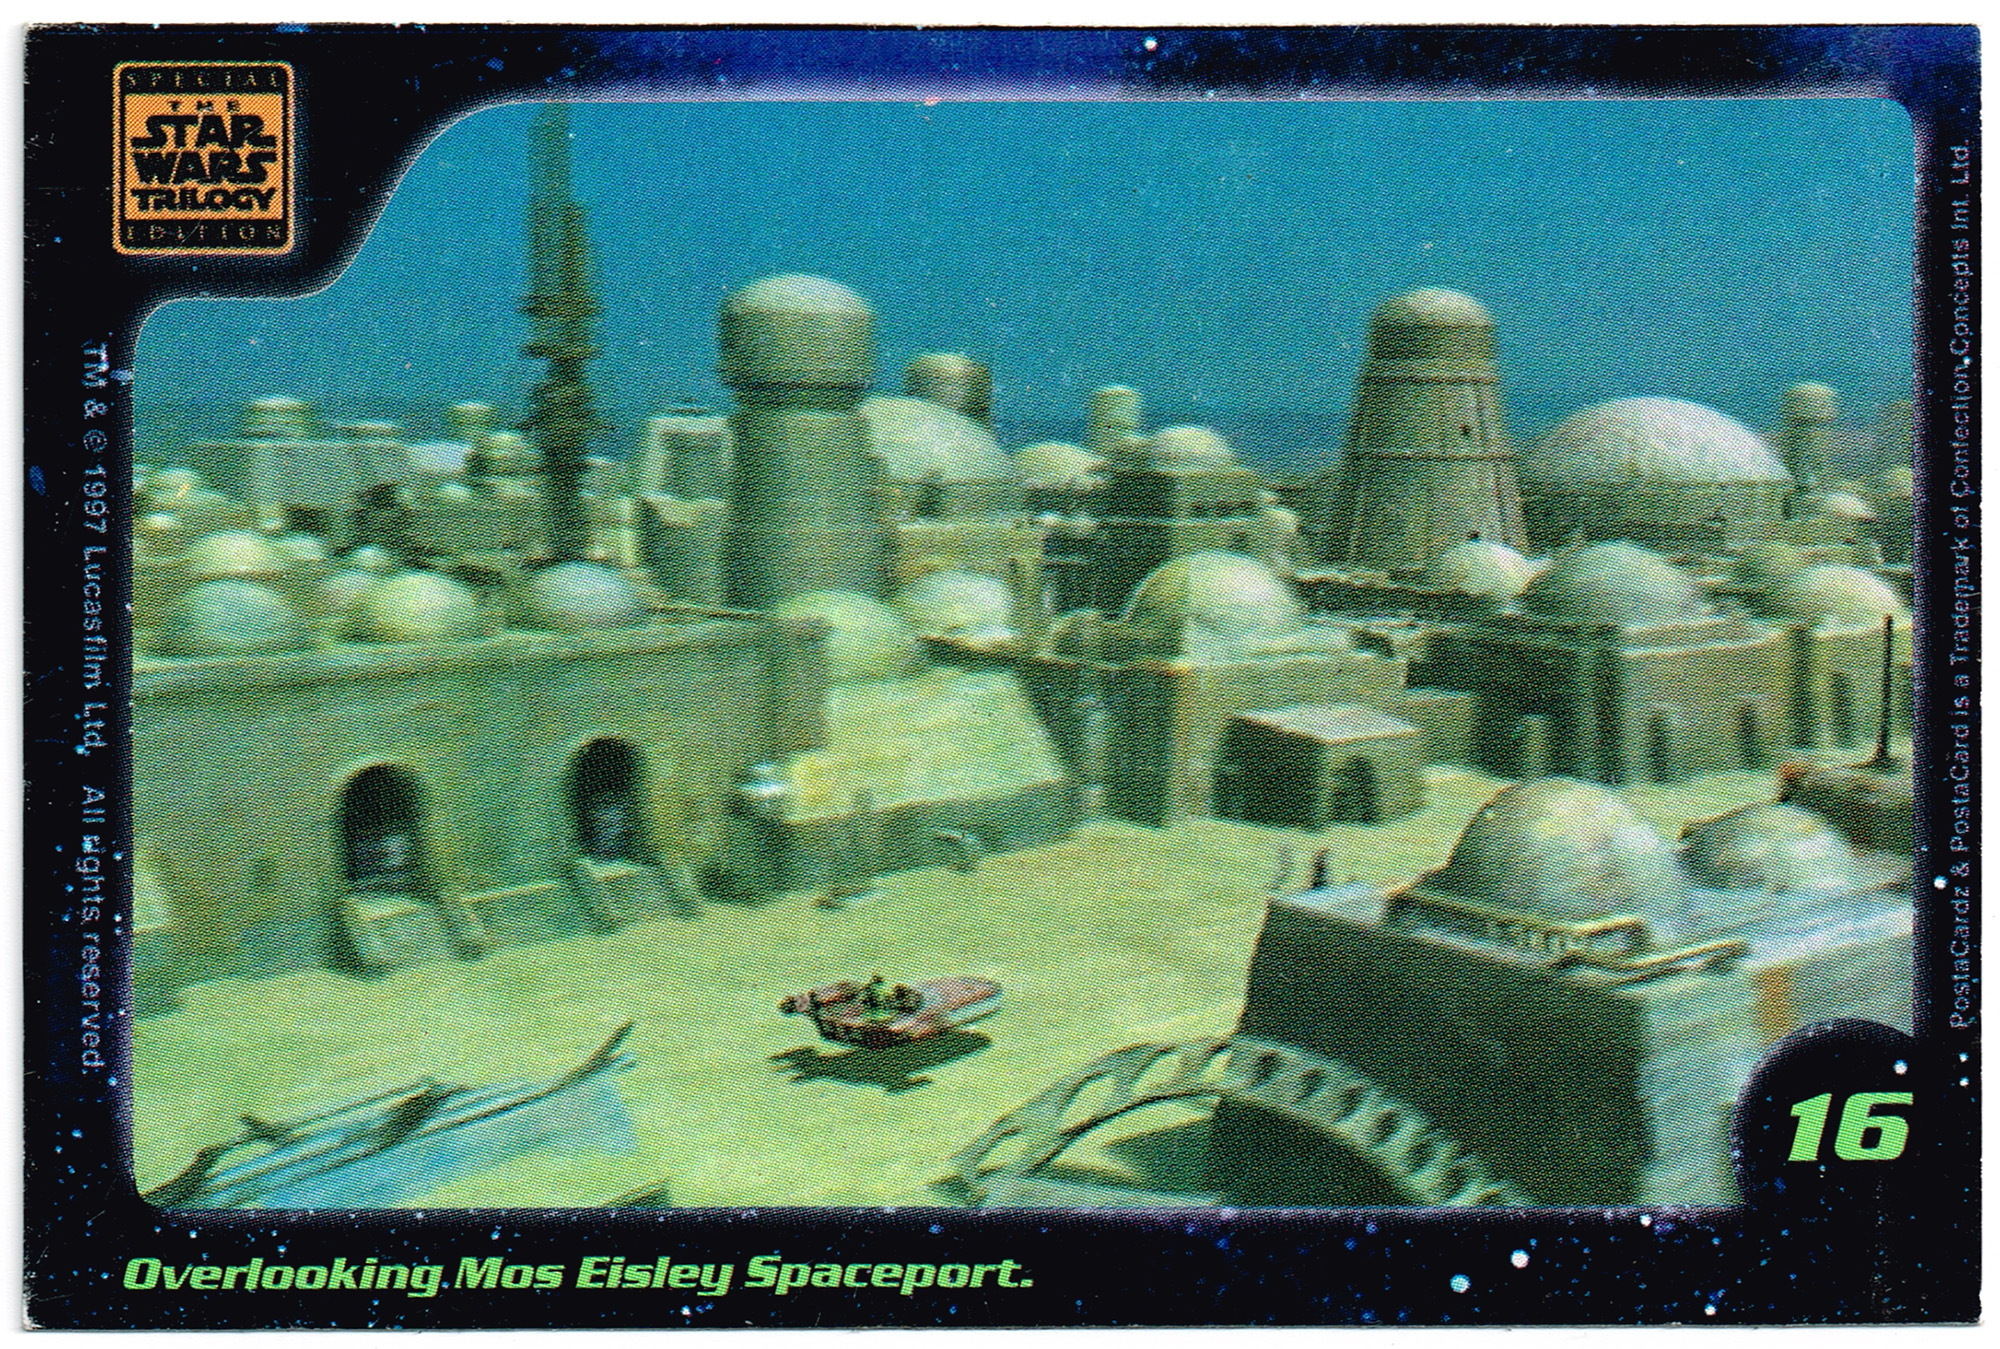 Confection Concepts Star Wars Card 16